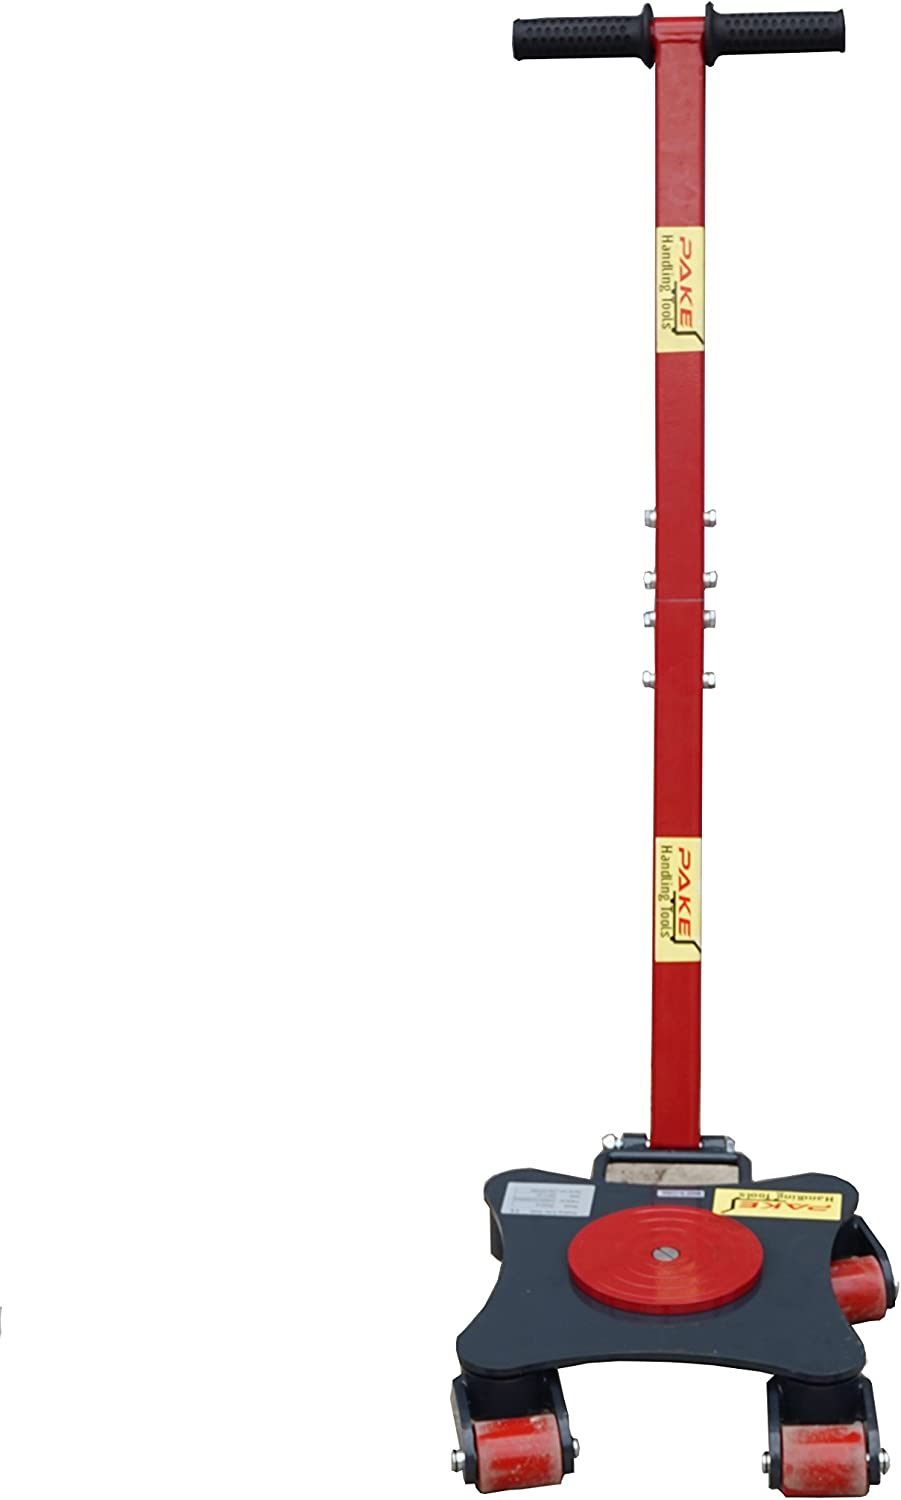 Pake Handling Tools Rotating Machine Dolly - Multi-Direction 360° Rotation Moving Dolly 2200lbs Capacity